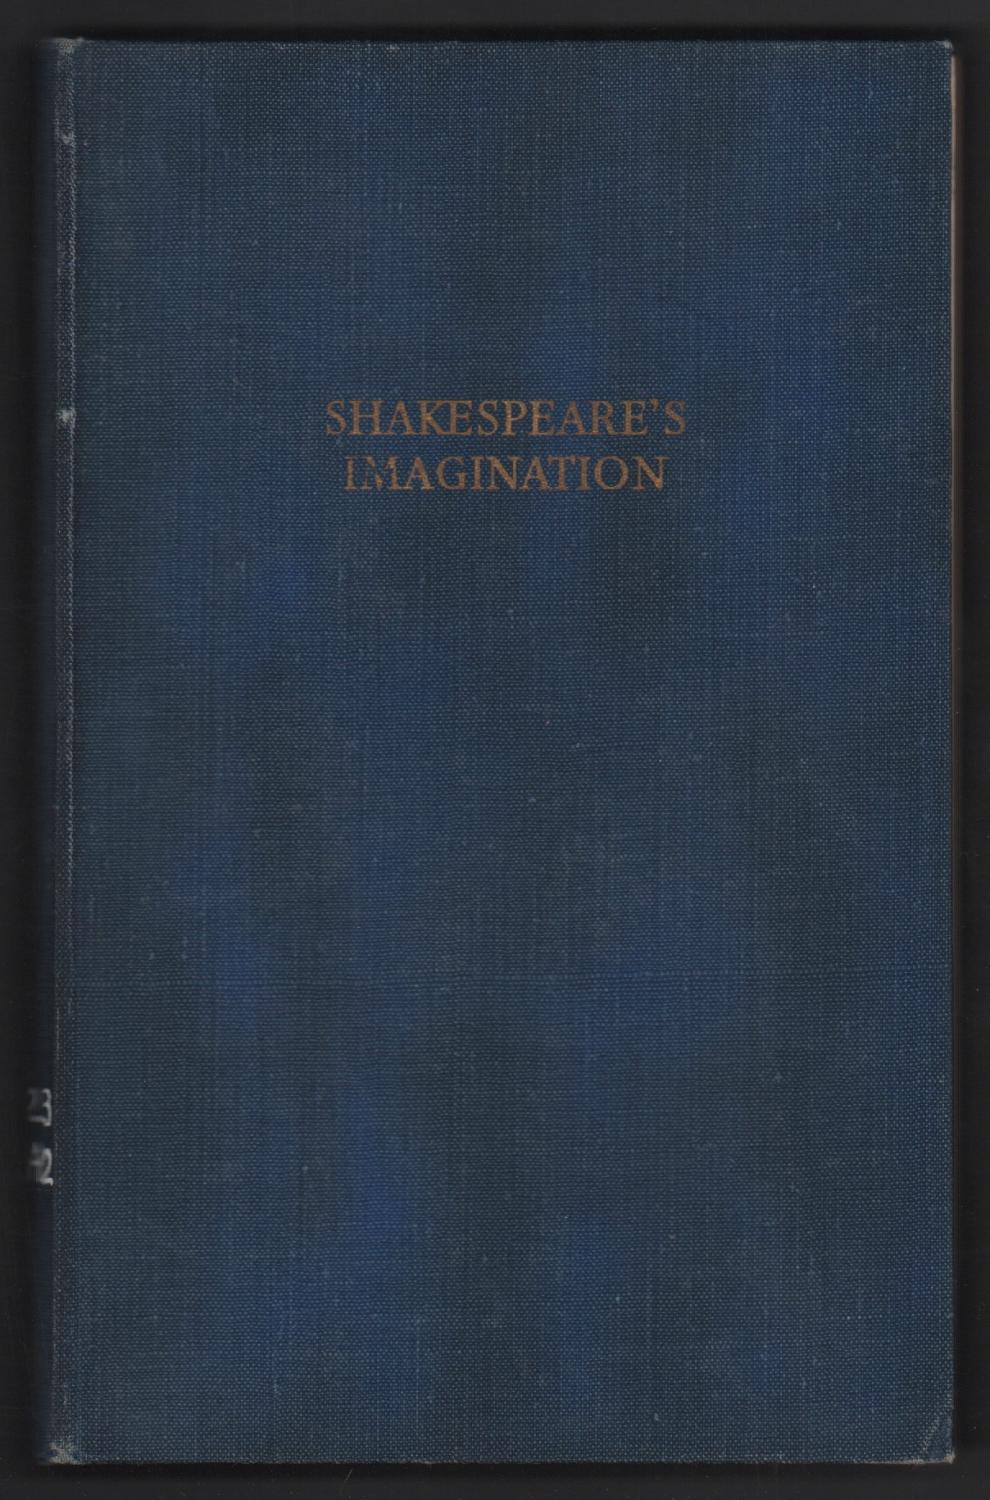 Shakespeare's Imagination